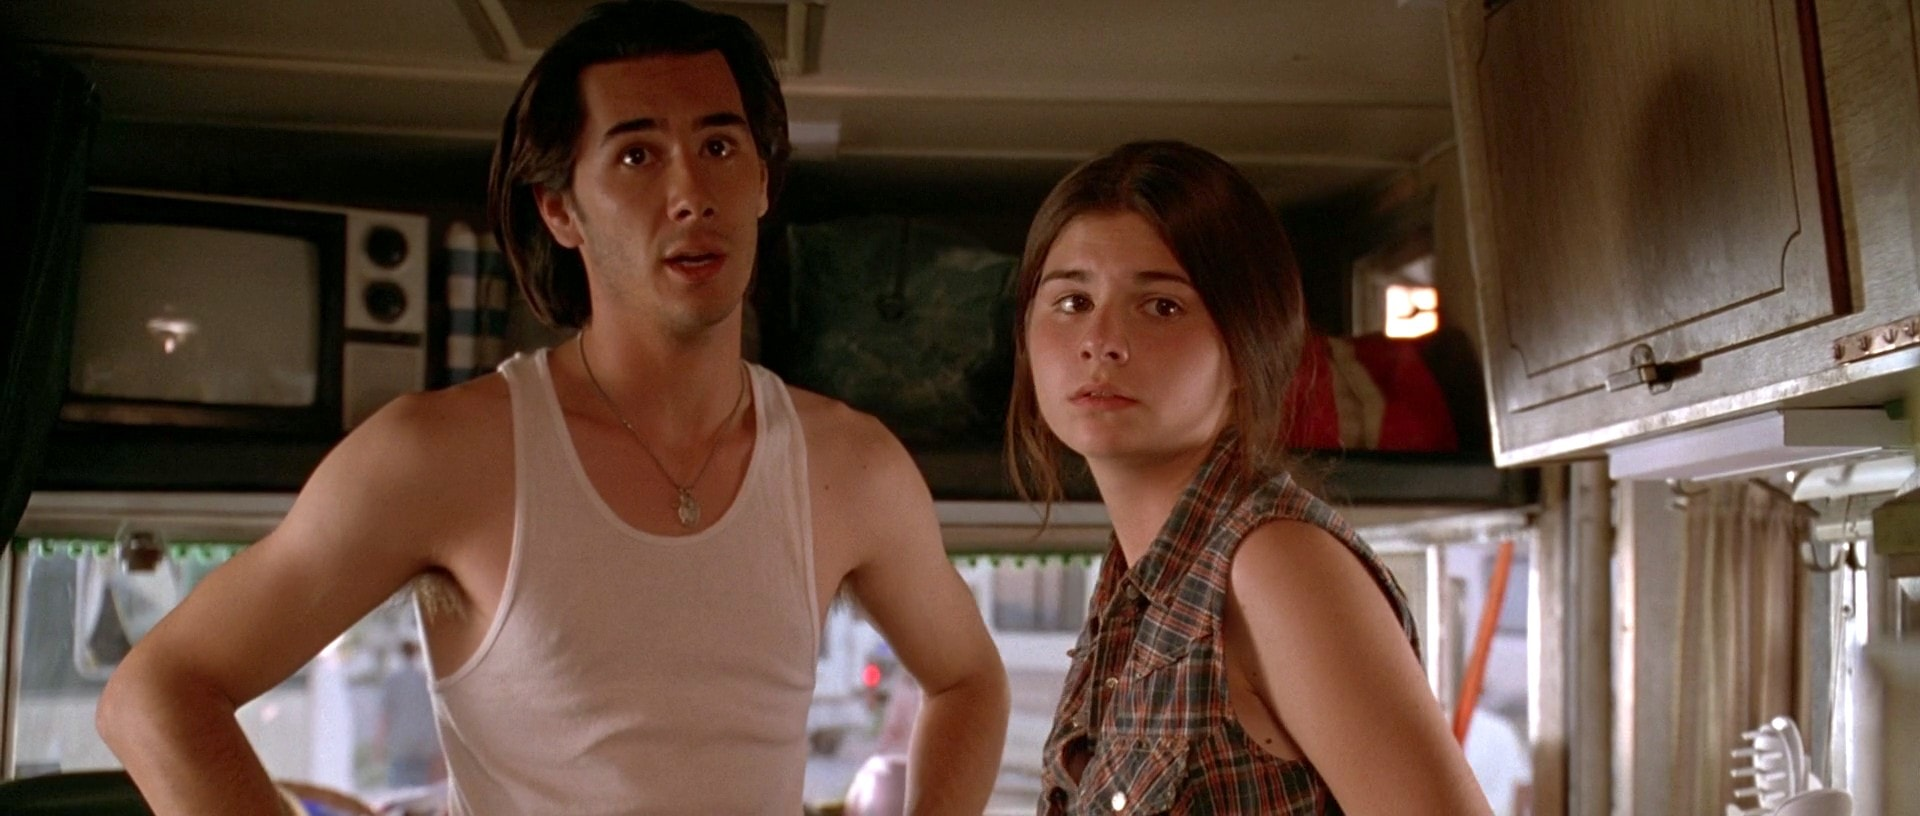 James Duval Wallpaper